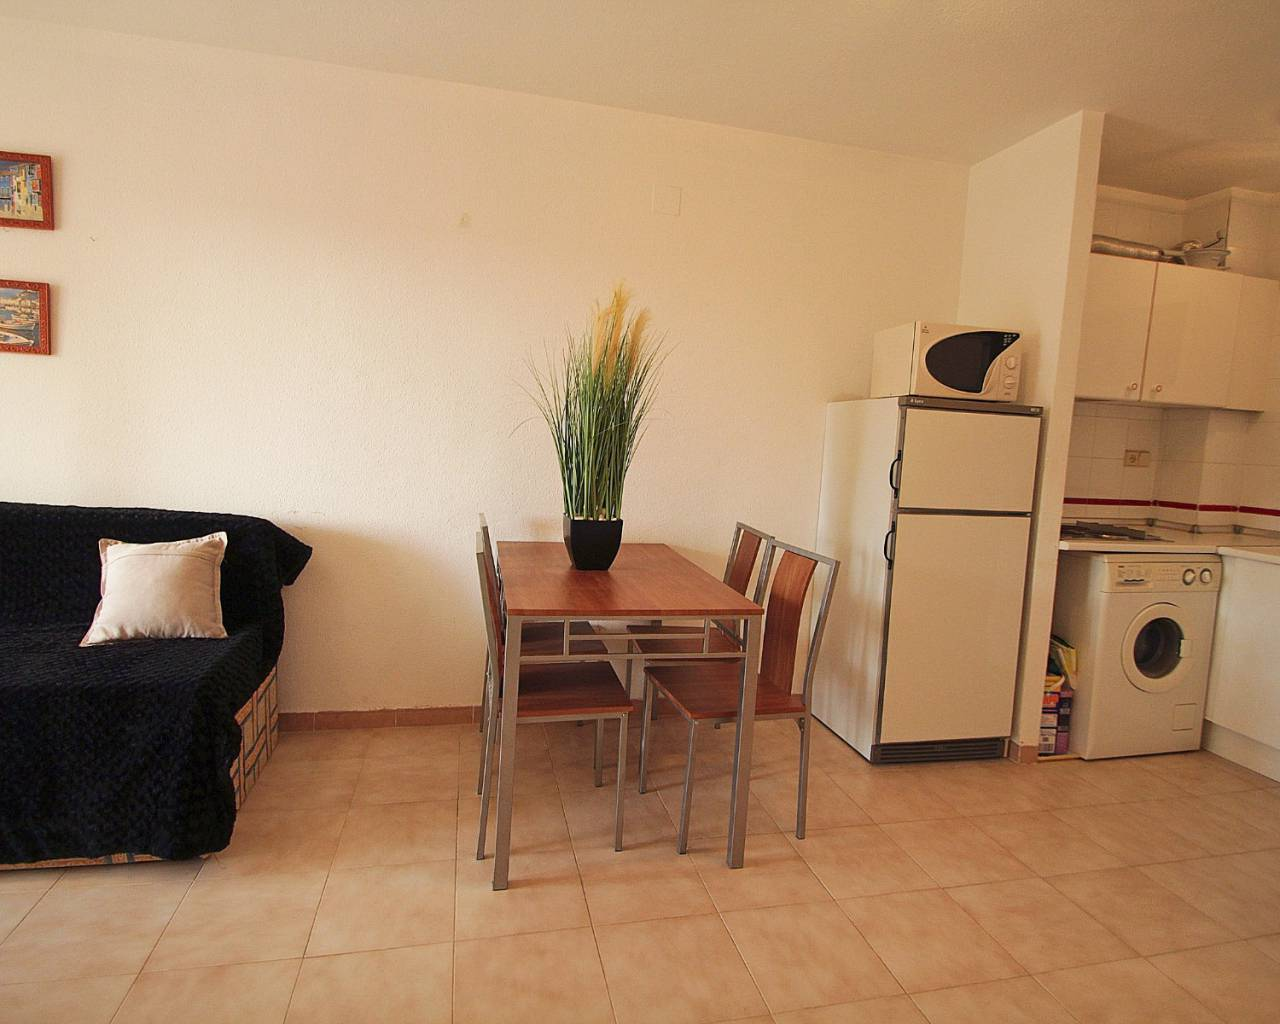 Sale - Appartement - Torrevieja - Torreblanca